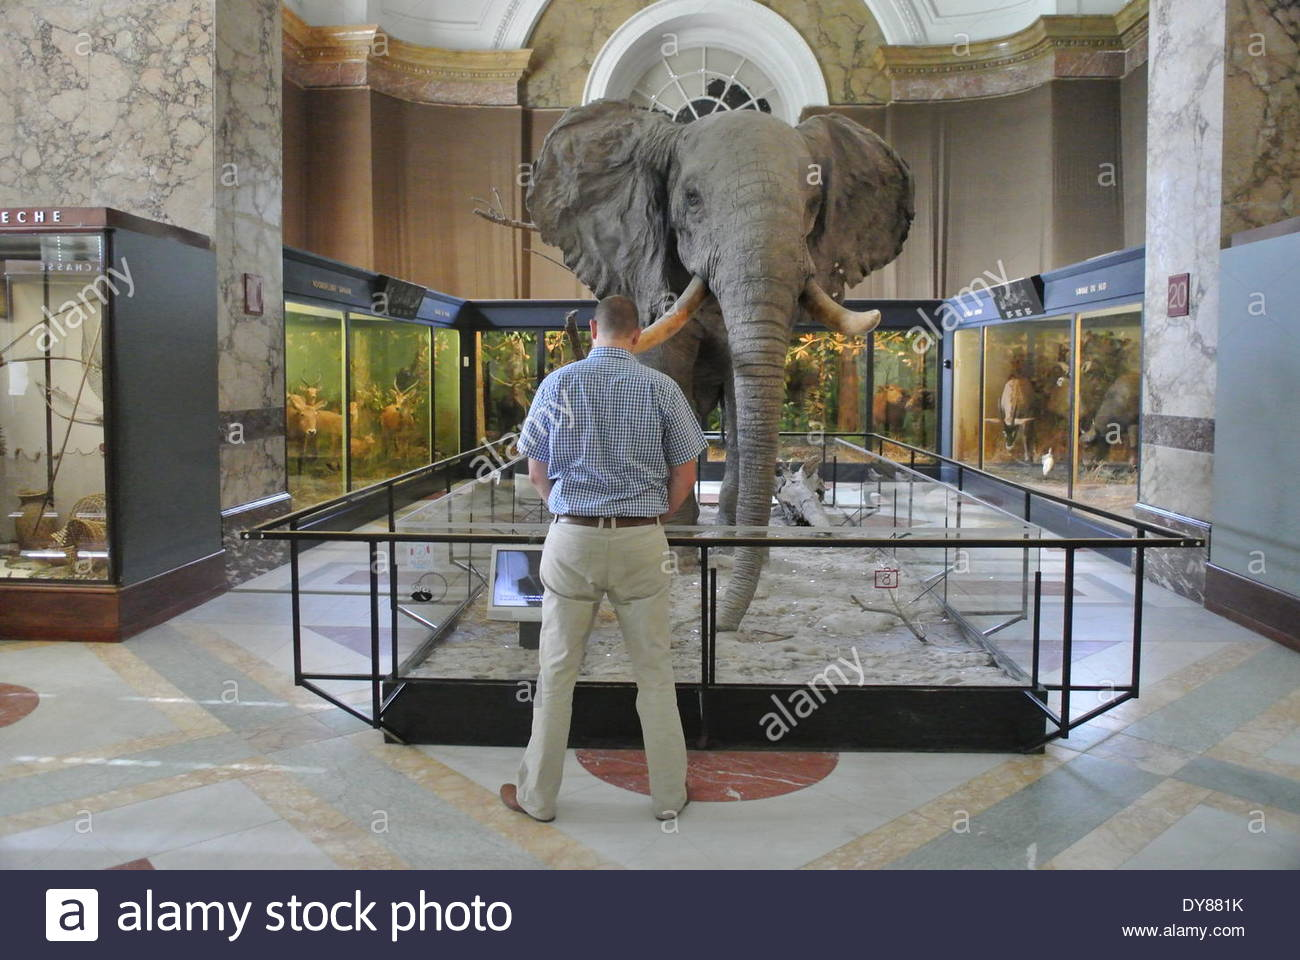 """Brussels, Belgium. 25th Aug, 2013. FILE PHOTO ''"""" A stuffed elephant is shown in a file photo Royal Museum for Central Africa in Tervuren, Brussels, on August 25, 2013. According to media reports, about 1.7 tonnes of ivory with an estimated value of 680,000 euros ($930,000) seized over recent years were to be destroyed today at the Royal Museum for Central Africa in Brussels. Reports says, 36.500 elephants are killed for their ivory every year.The museum closed for renovation on 1 December 2013 for a three-year renovation period. At the scene also, were ambassadors and dignitaries from v - Stock Image"""